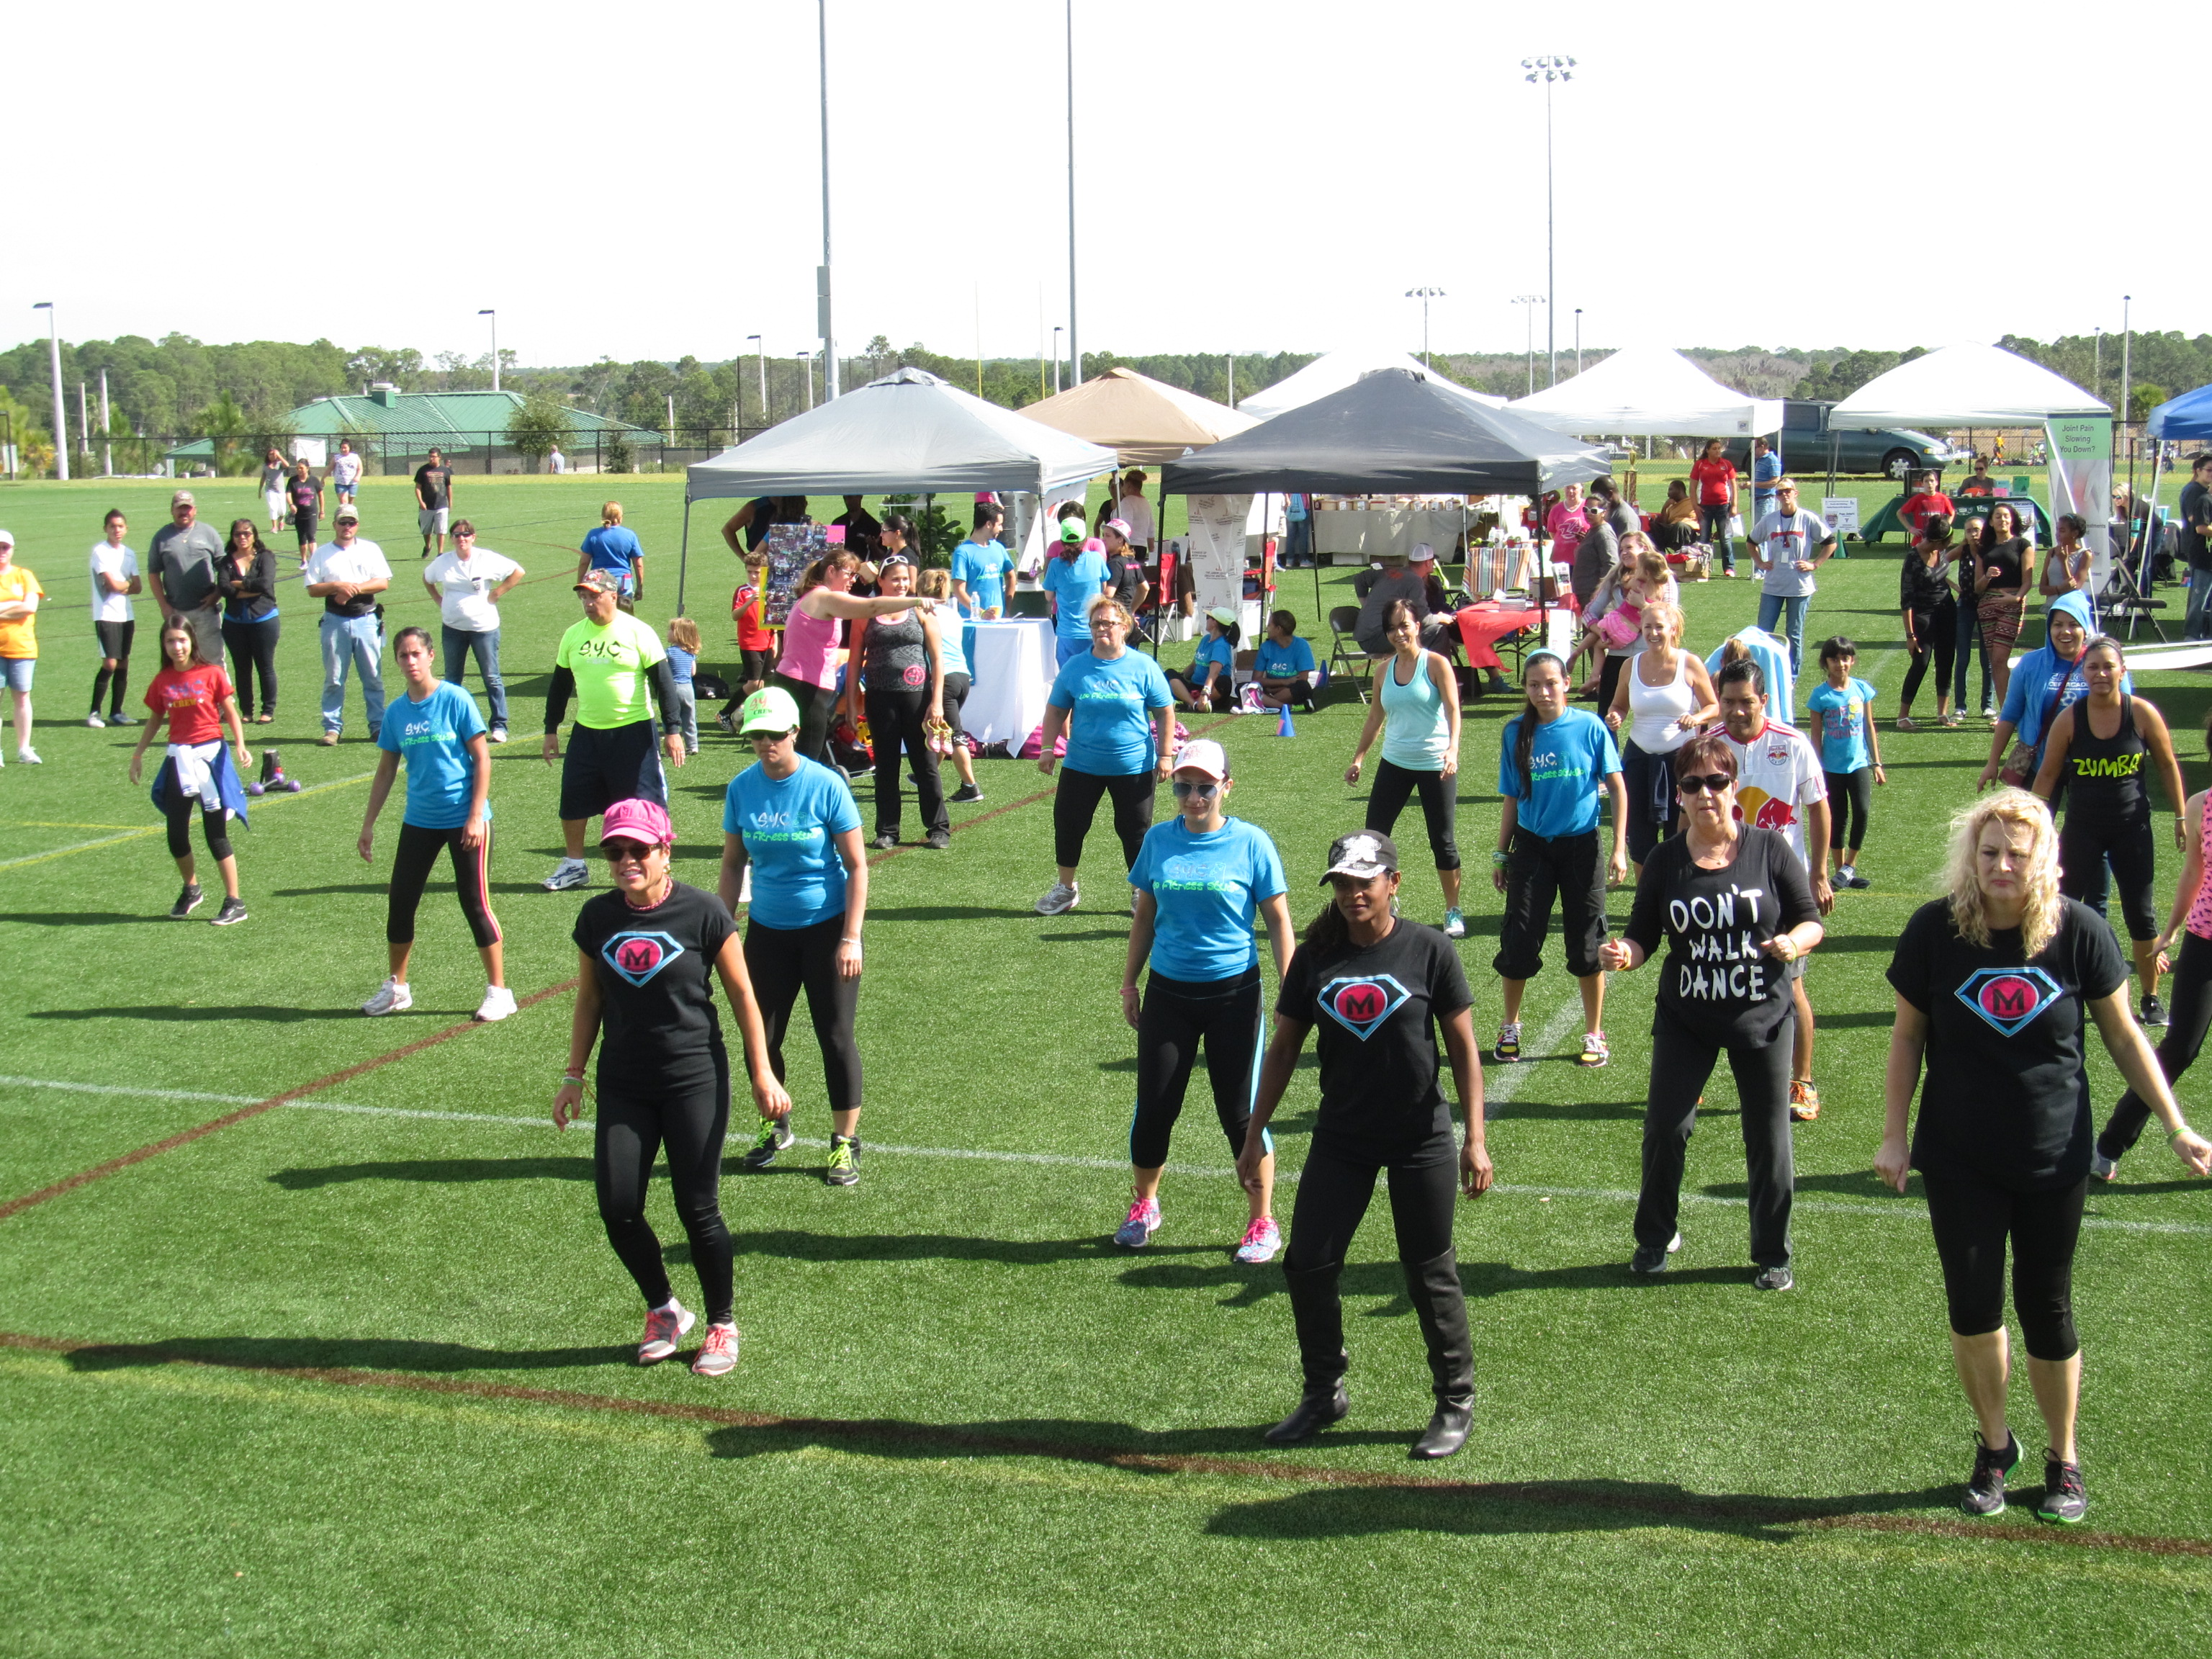 A family fitness event was held at Northeast Regional Park